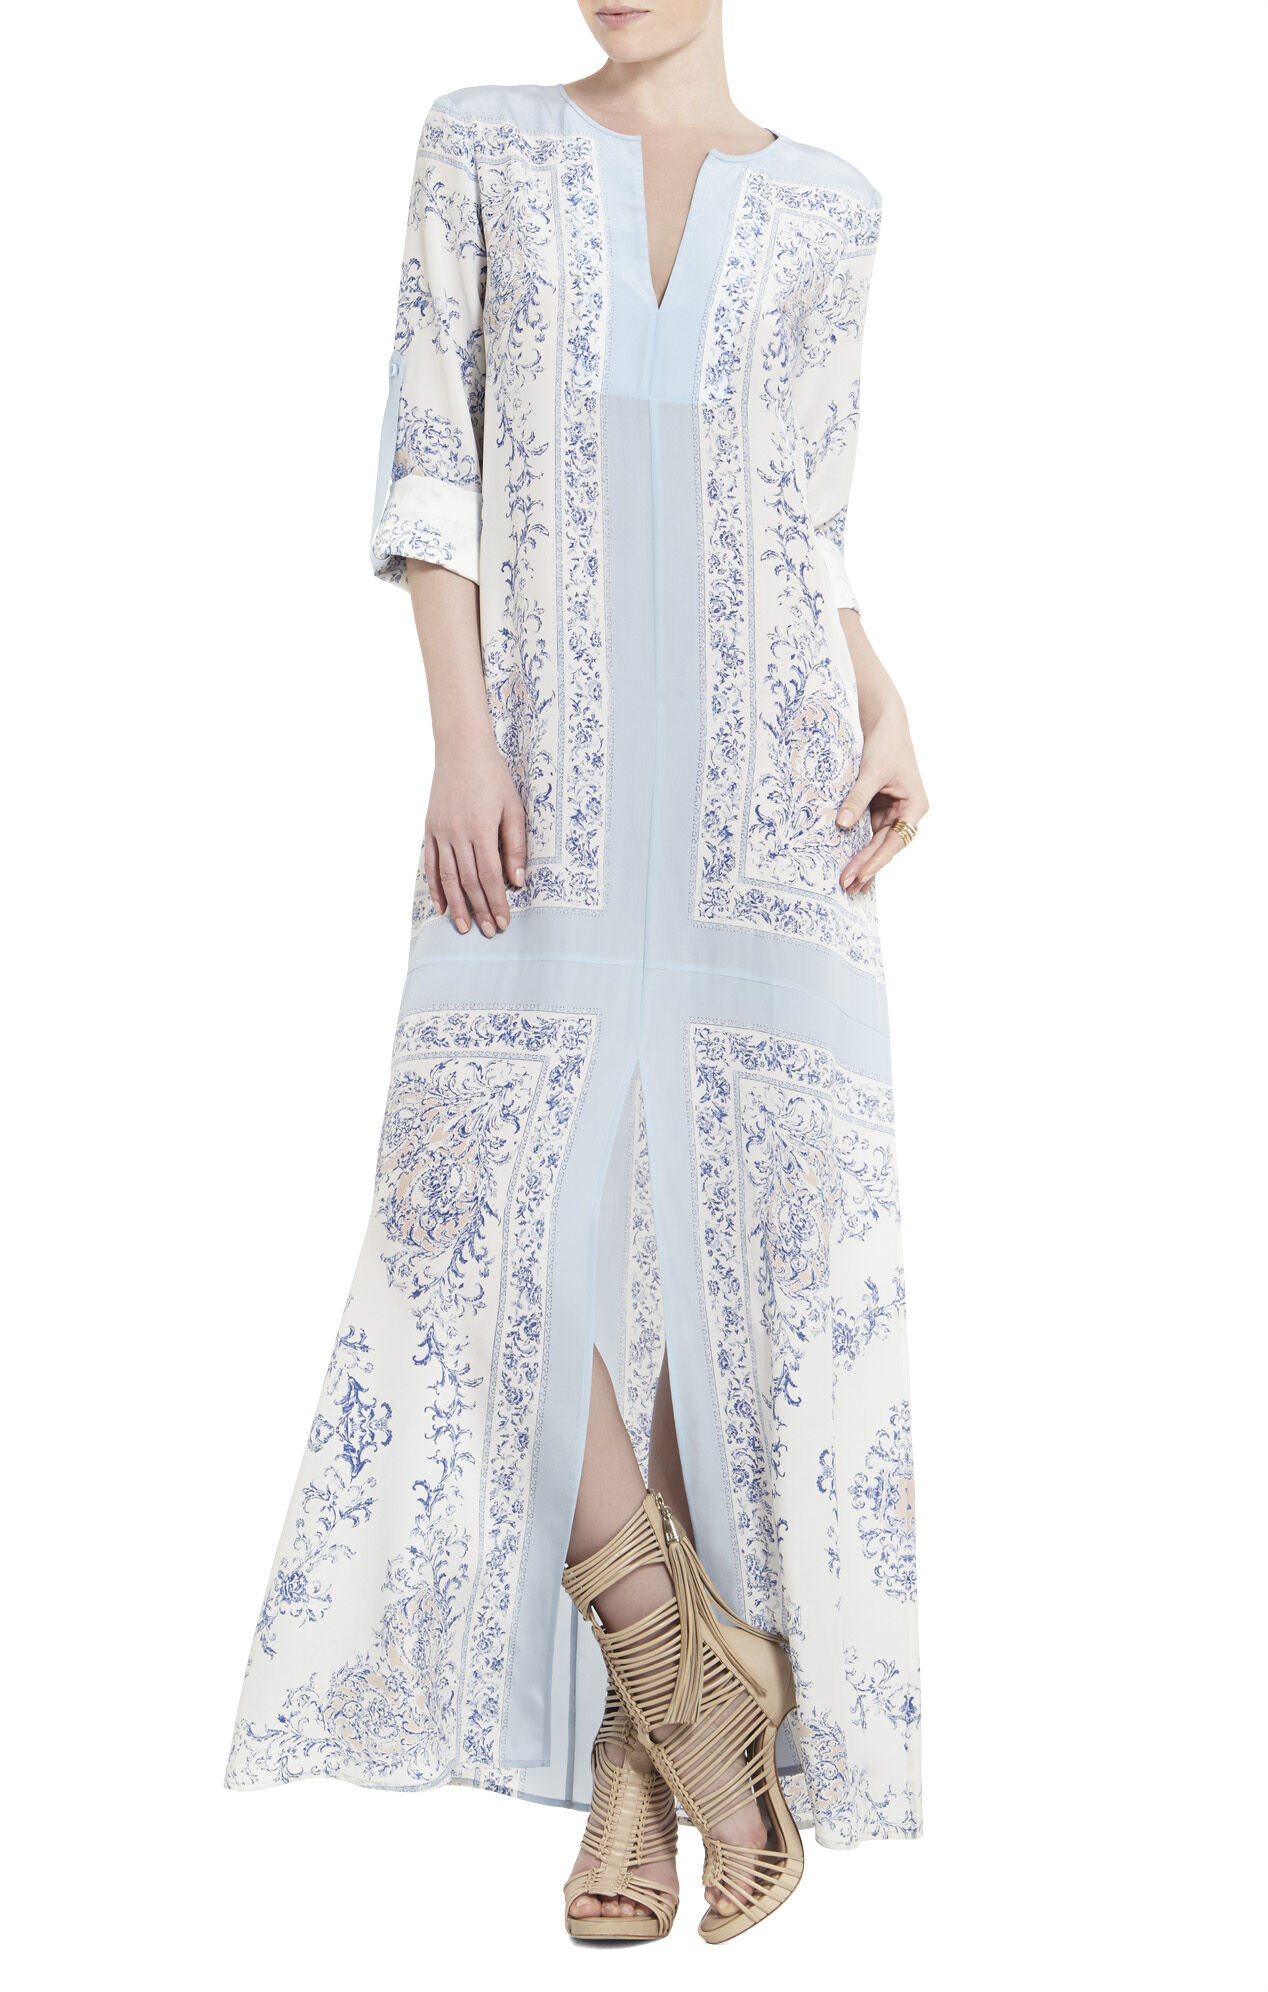 Olivia Scarf-Printed Tunic Dress